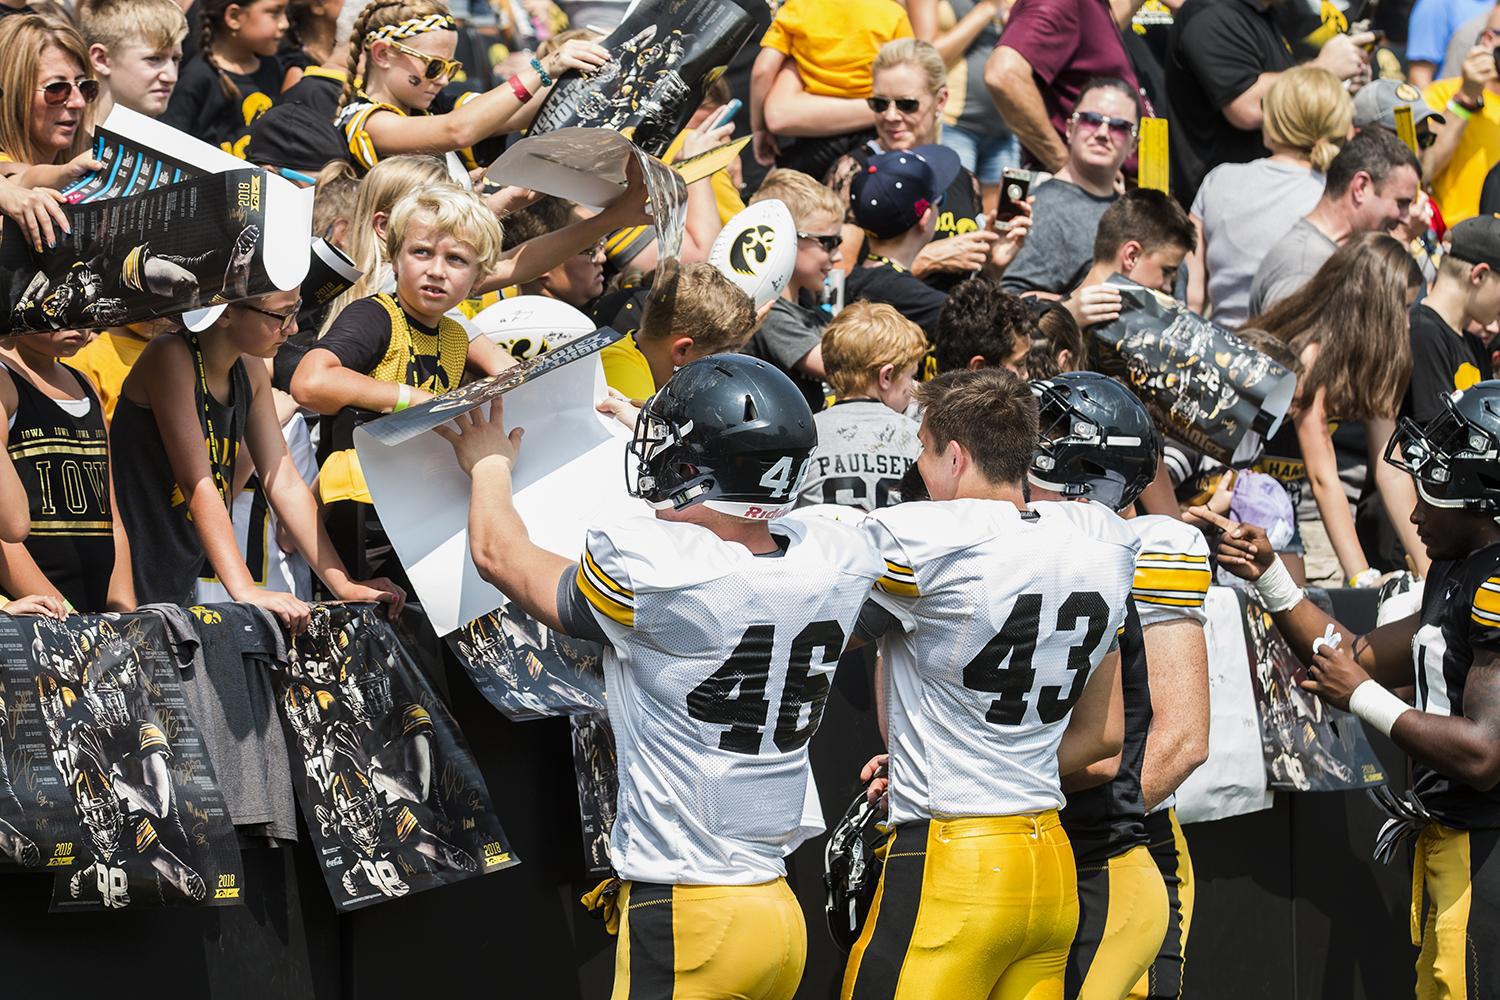 The+Iowa+football+team+signs+posters+during+Iowa+Football+Kids%27+Day+at+Kinnick+Stadium+on+Saturday%2C+Aug.+11%2C+2018.+